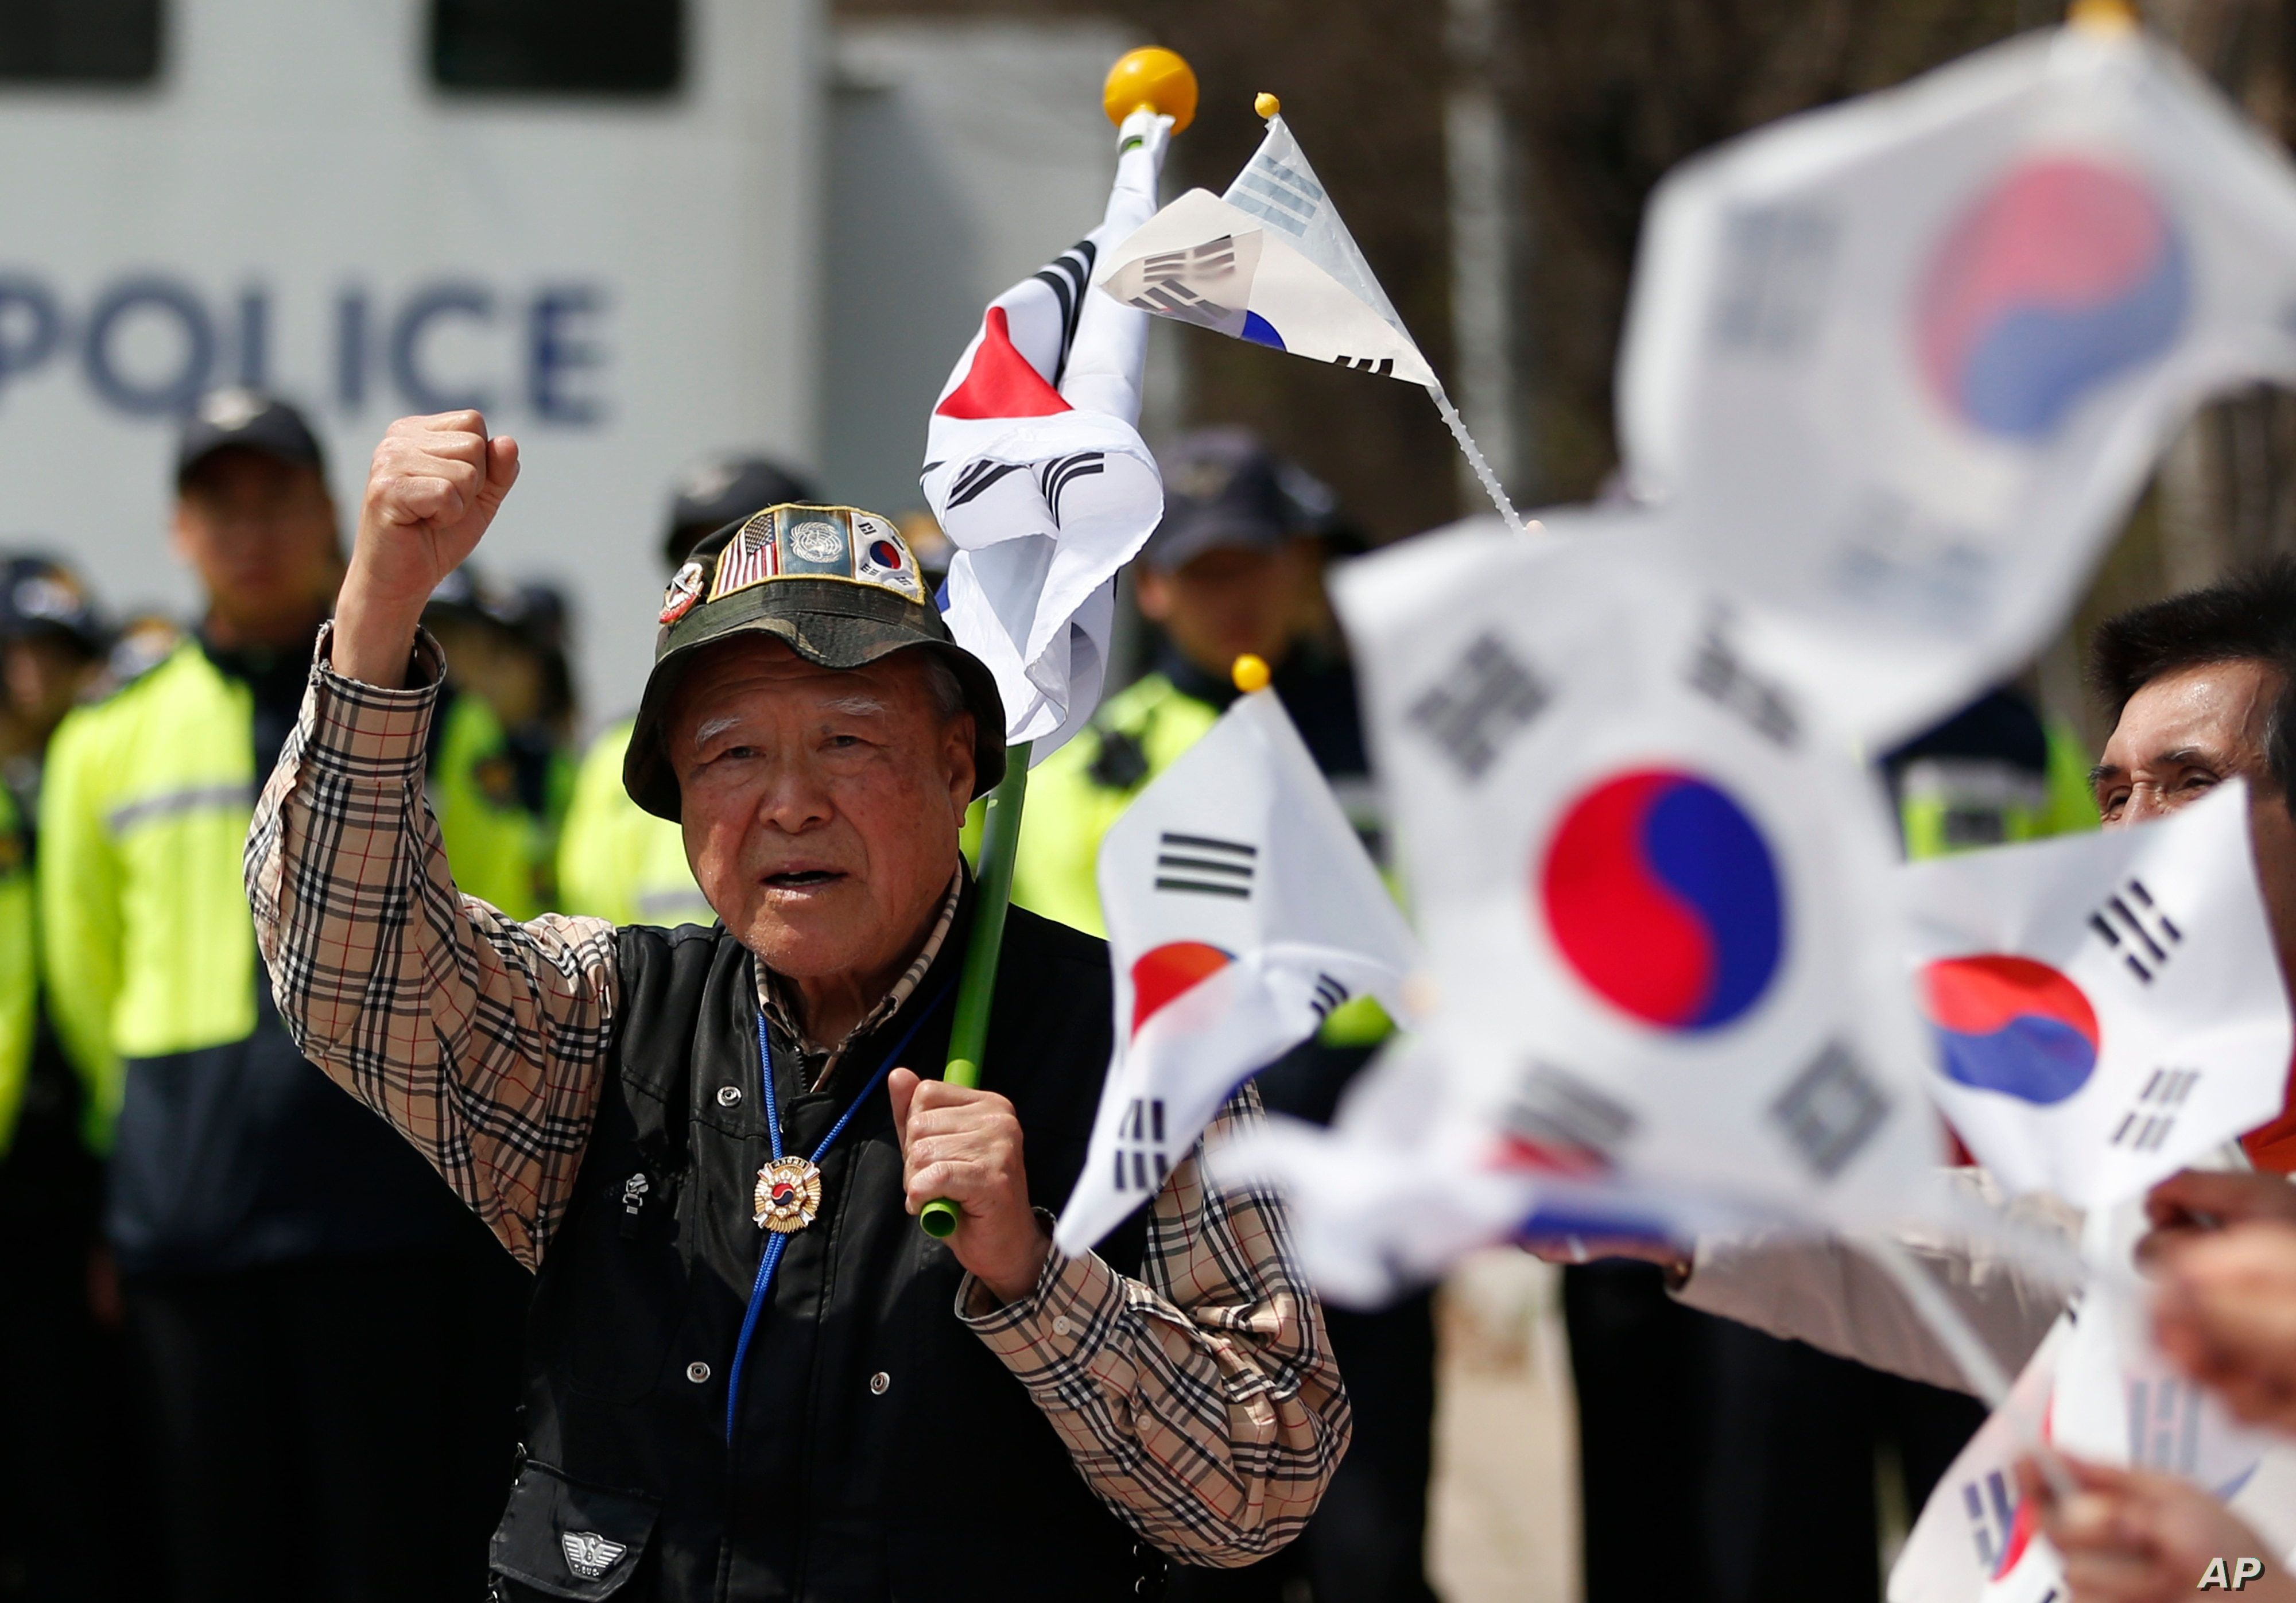 NK tells S. Korea to 'stop nonsensical' talk about denuclearization